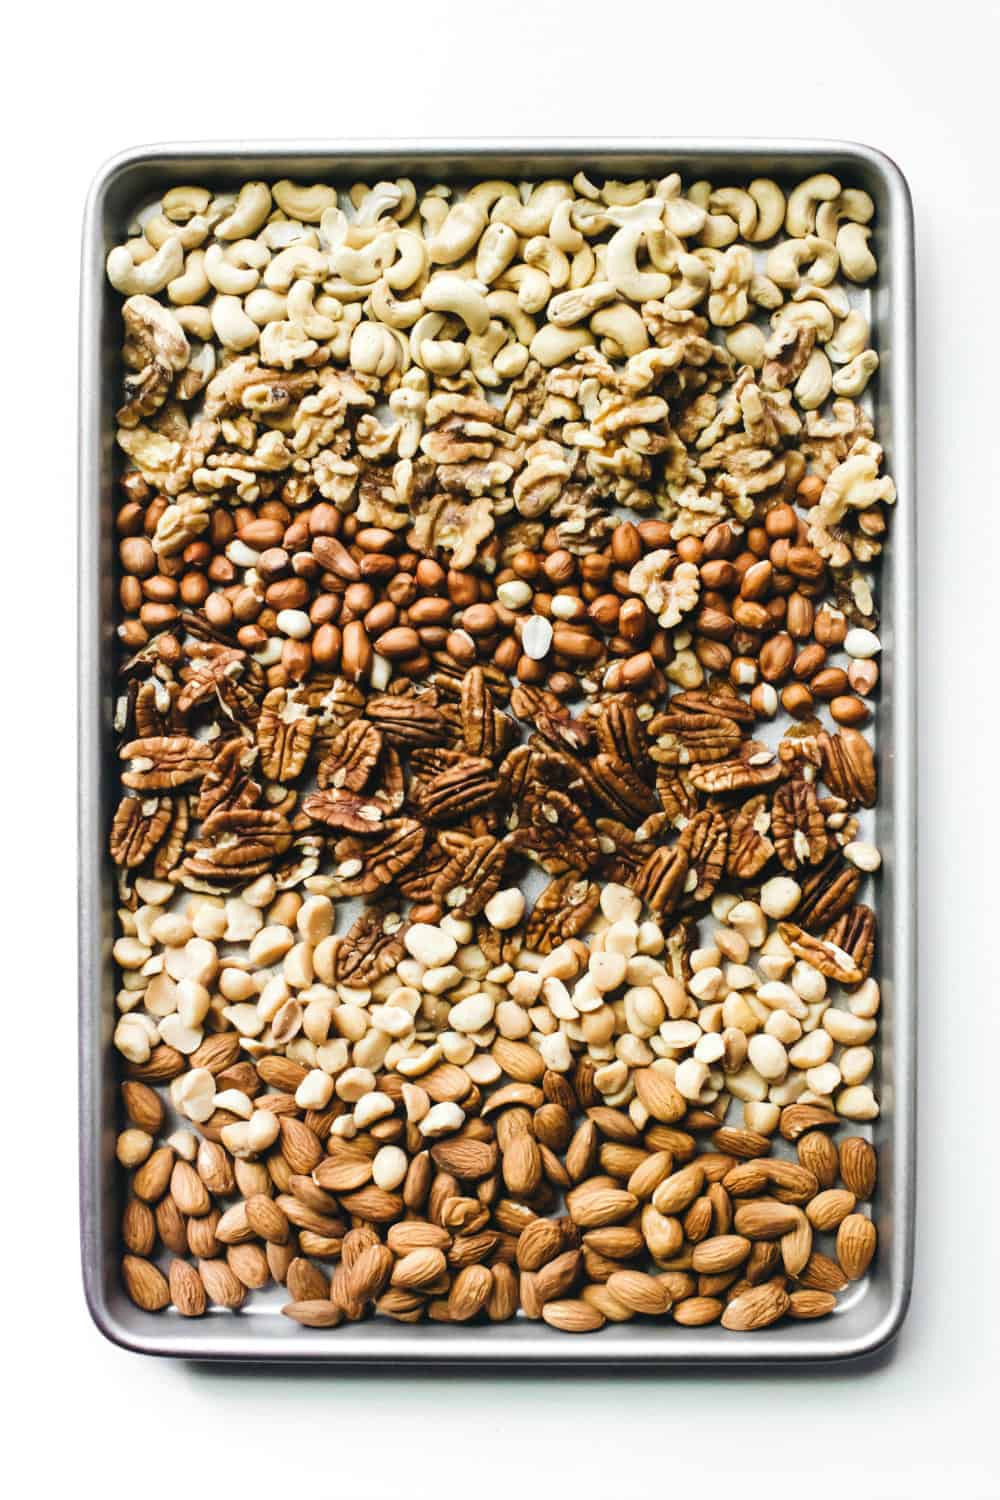 Assorted mixed, toasted nuts arranged on a sheet pan